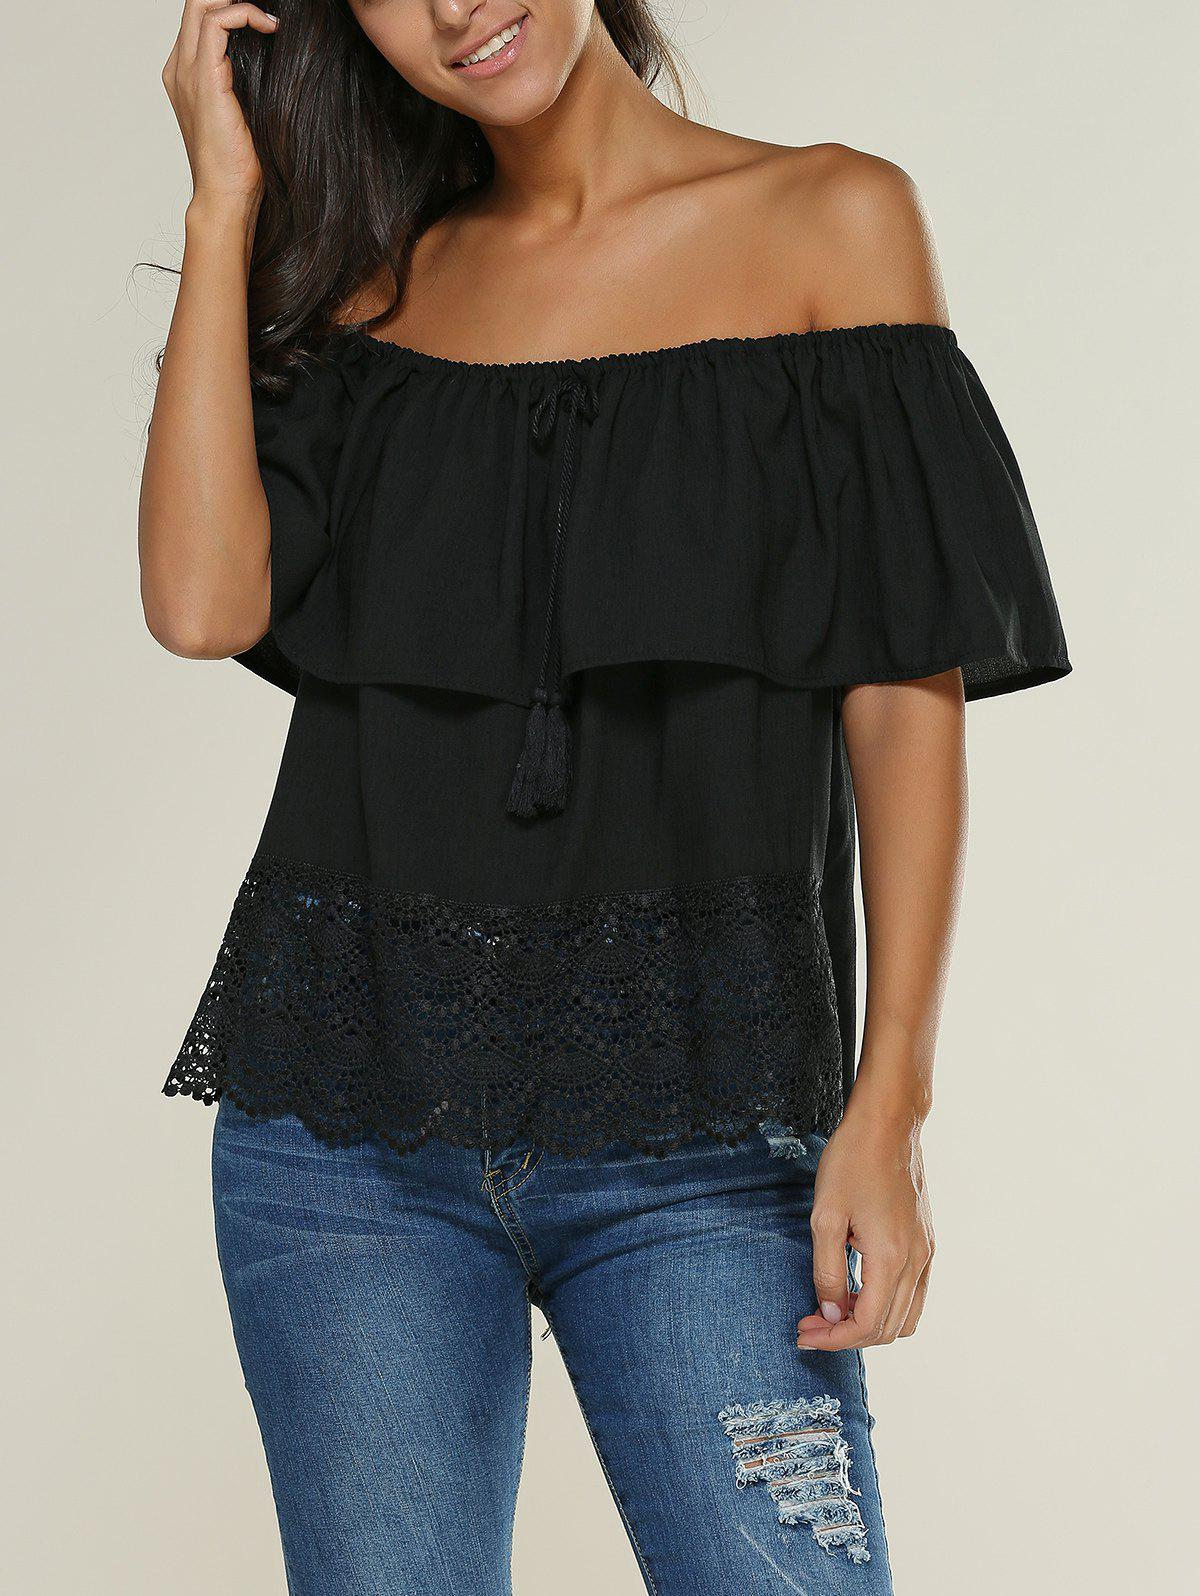 Off The Shoulder Lace Insert Ruffle Blouse - BLACK XL